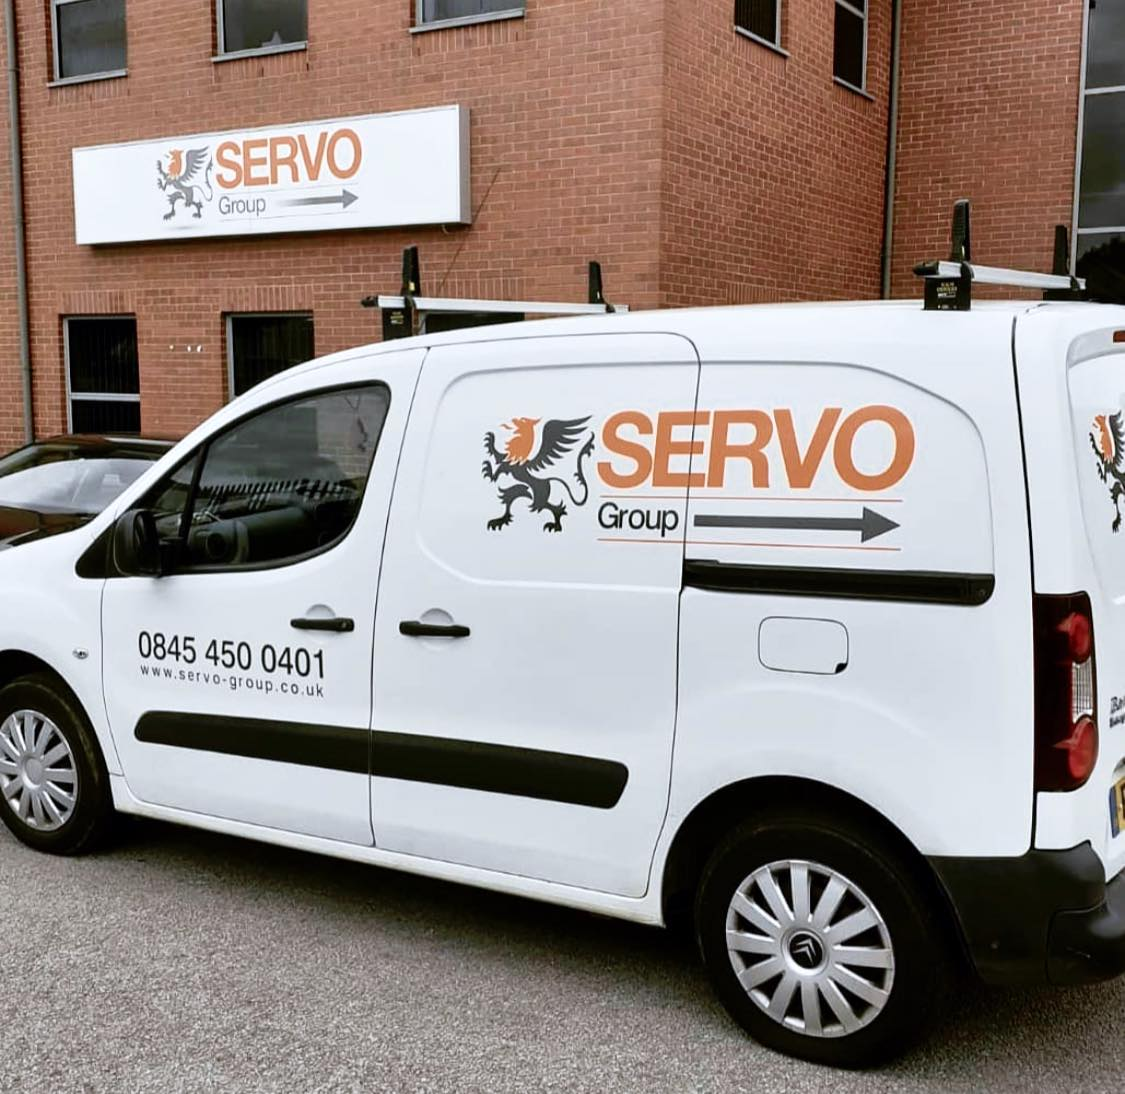 Servo Group Contract Win Will Create Over 100 Jobs in Leeds